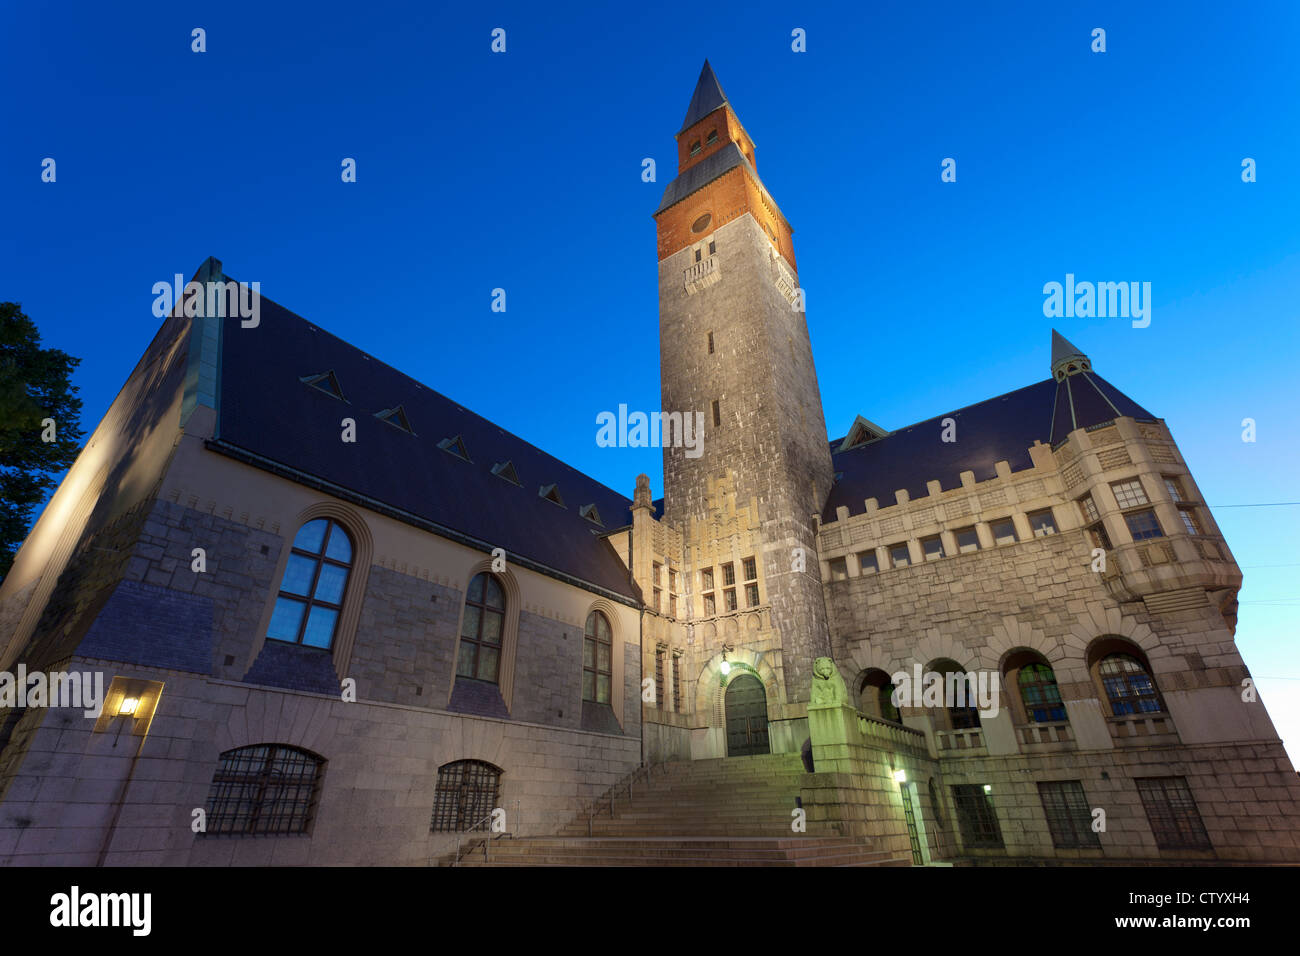 Stone building lit up at night - Stock Image